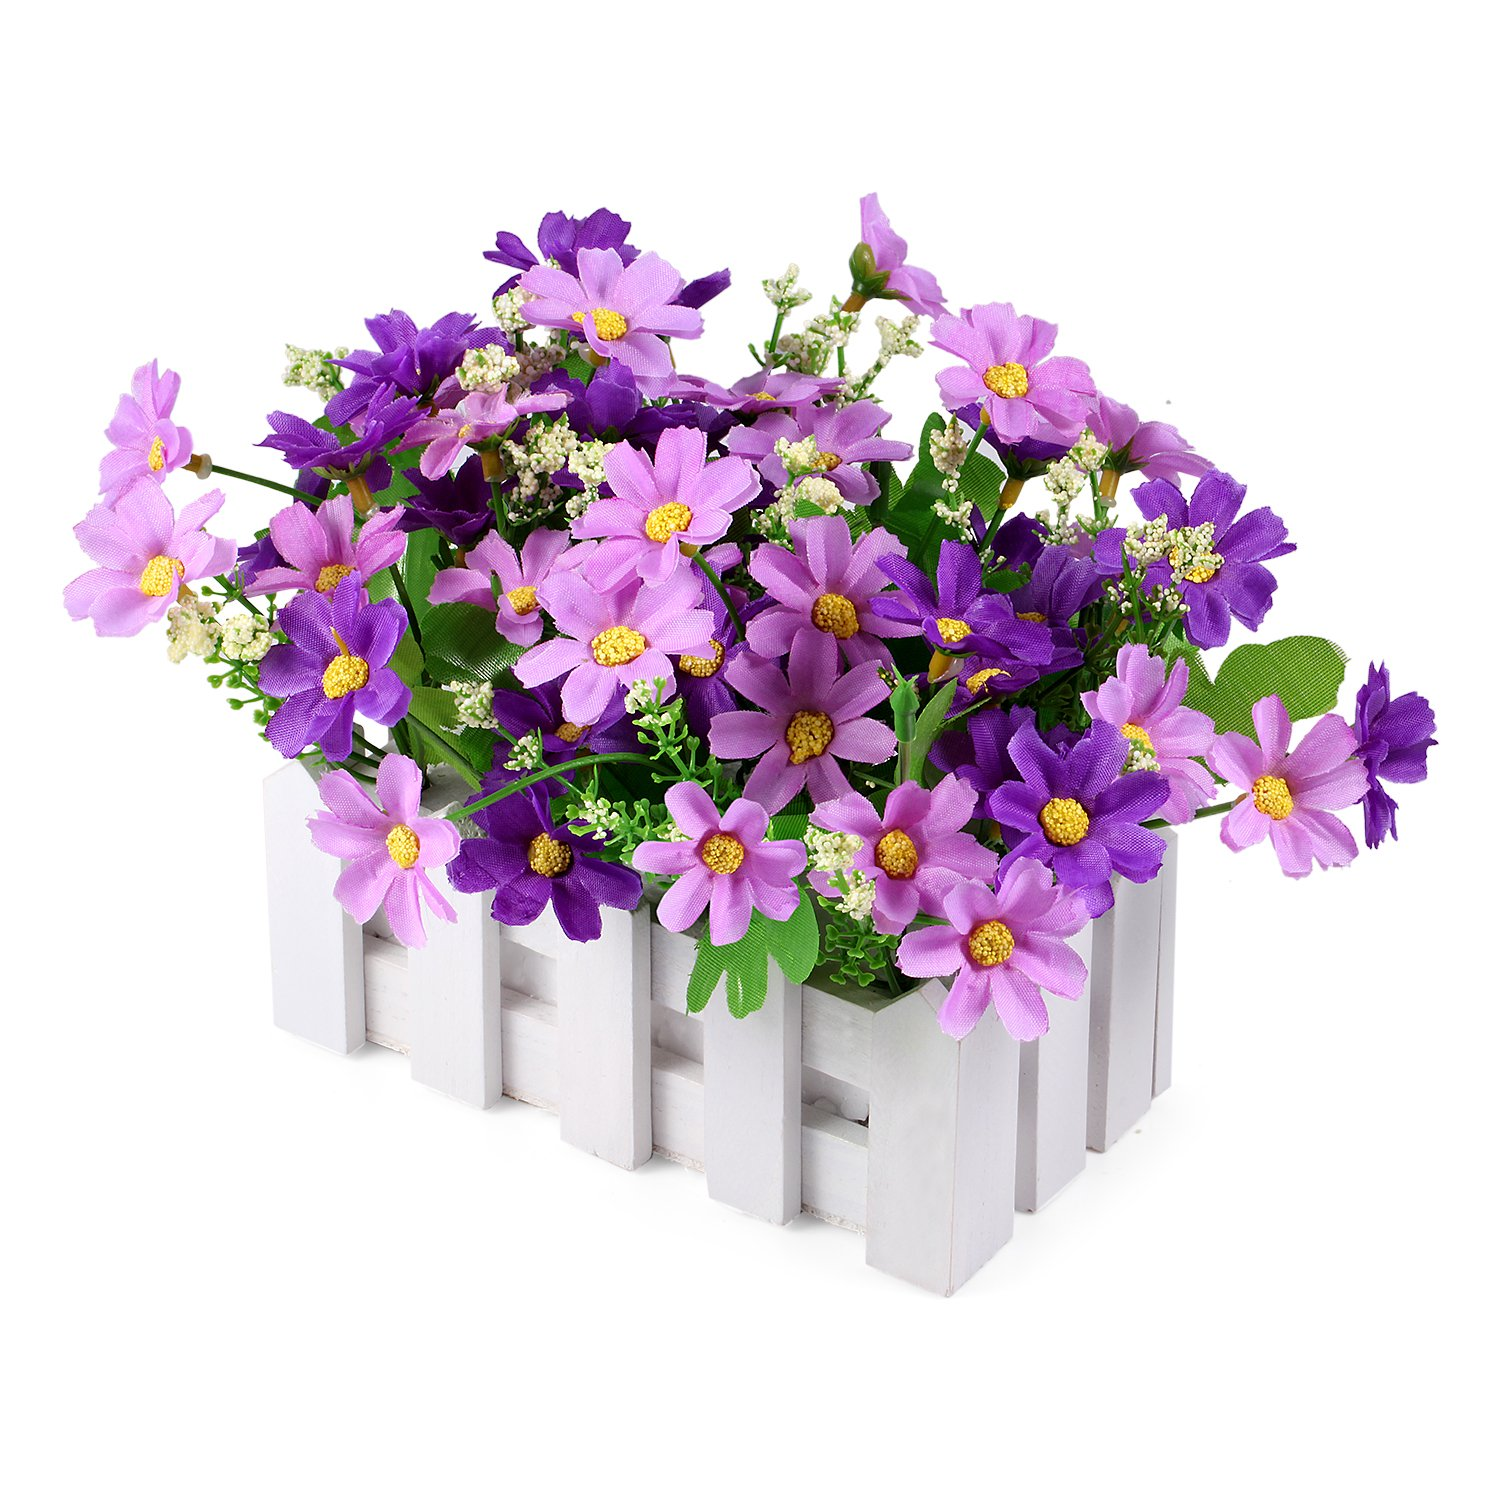 Louis Garden Artificial Flowers Fake Daisy in Picket Fence Pot Pack - Mini Potted Plant (Daisy-Purple)